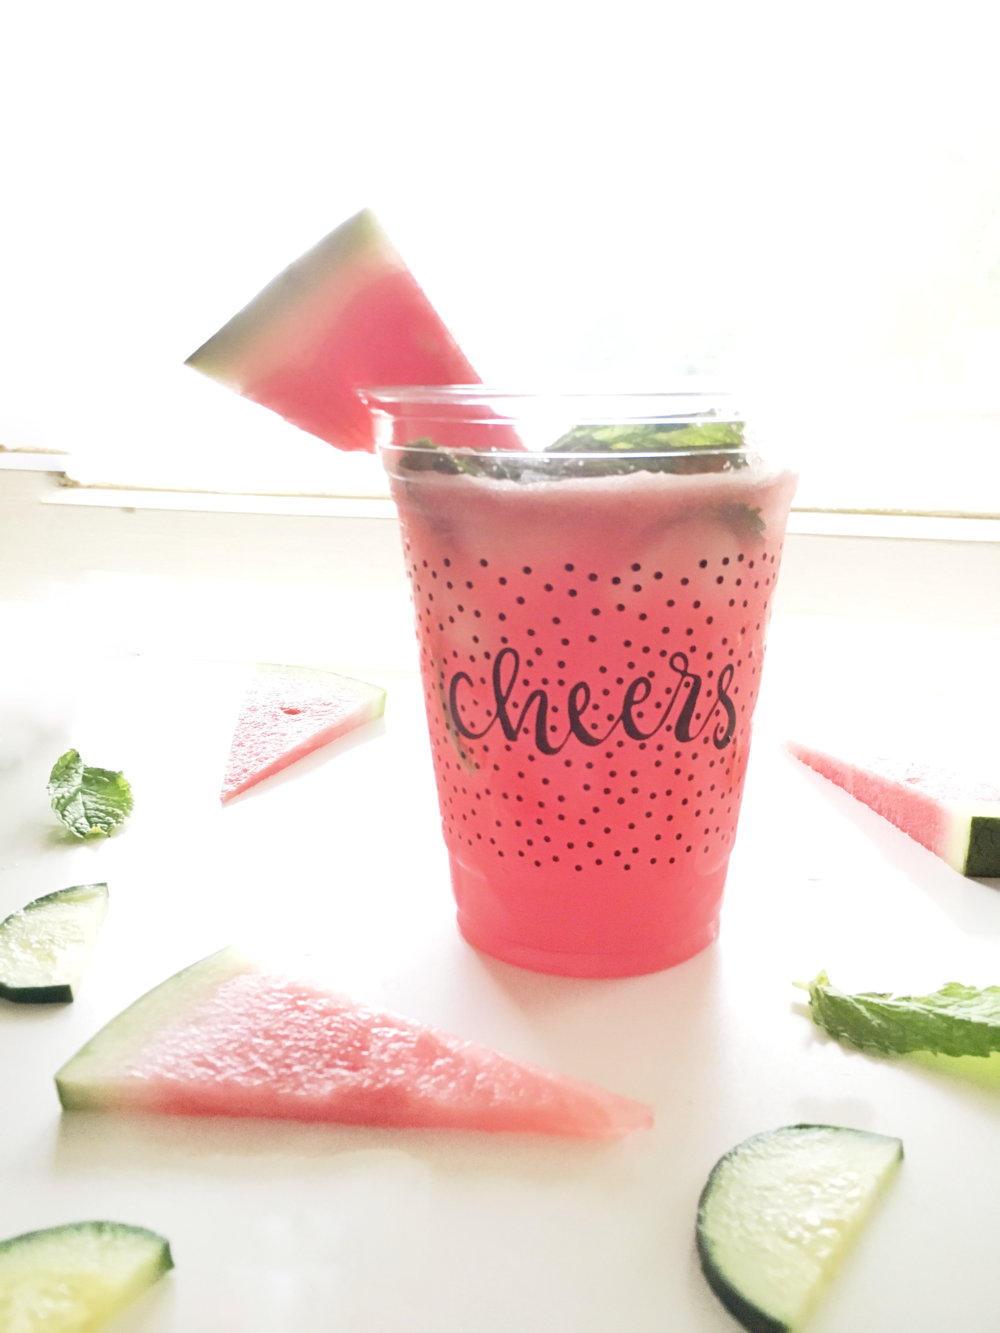 Cool down this summer with a refreshing watermelon cooler drink. All you need are watermelon, cucumbers, limes, and mint. Sip sip, hooray! Get the full details at @heylovedesigns.com. | Hey Love Designs